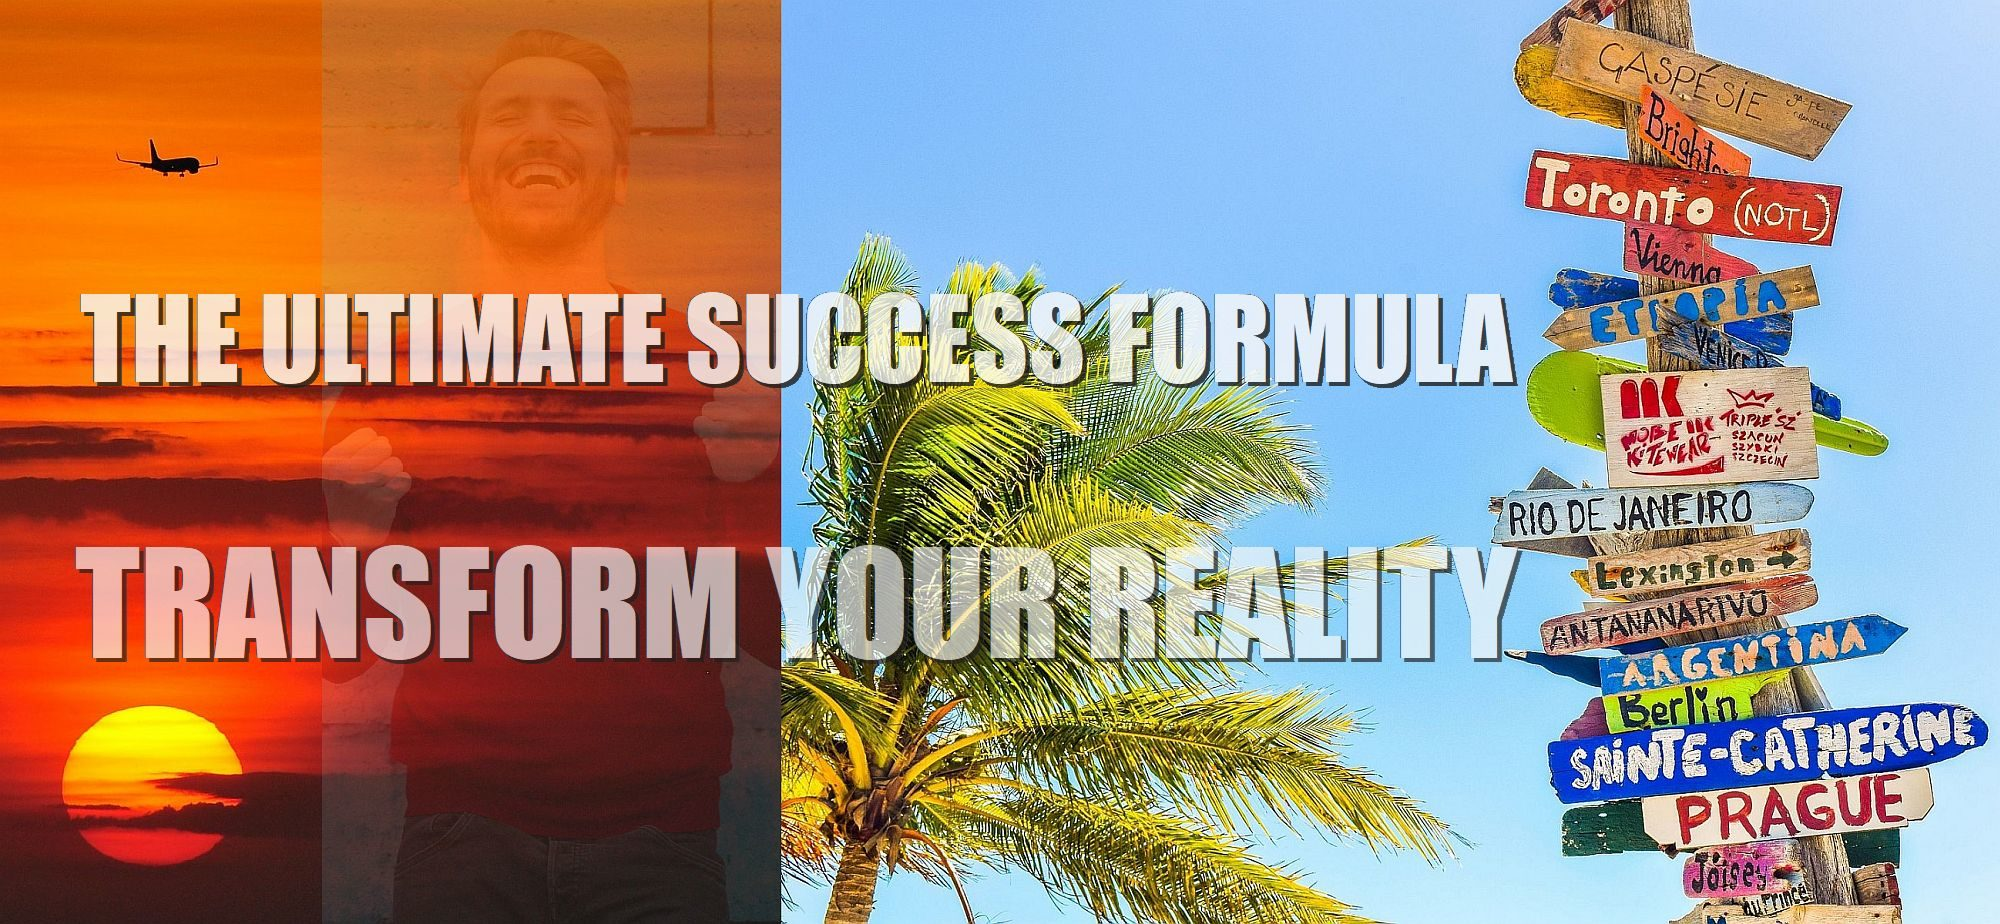 What-is-the-ultimate-mind-over-matter-success-formula-How-do-i-use-the-power-of-positive-thinking-a-2000